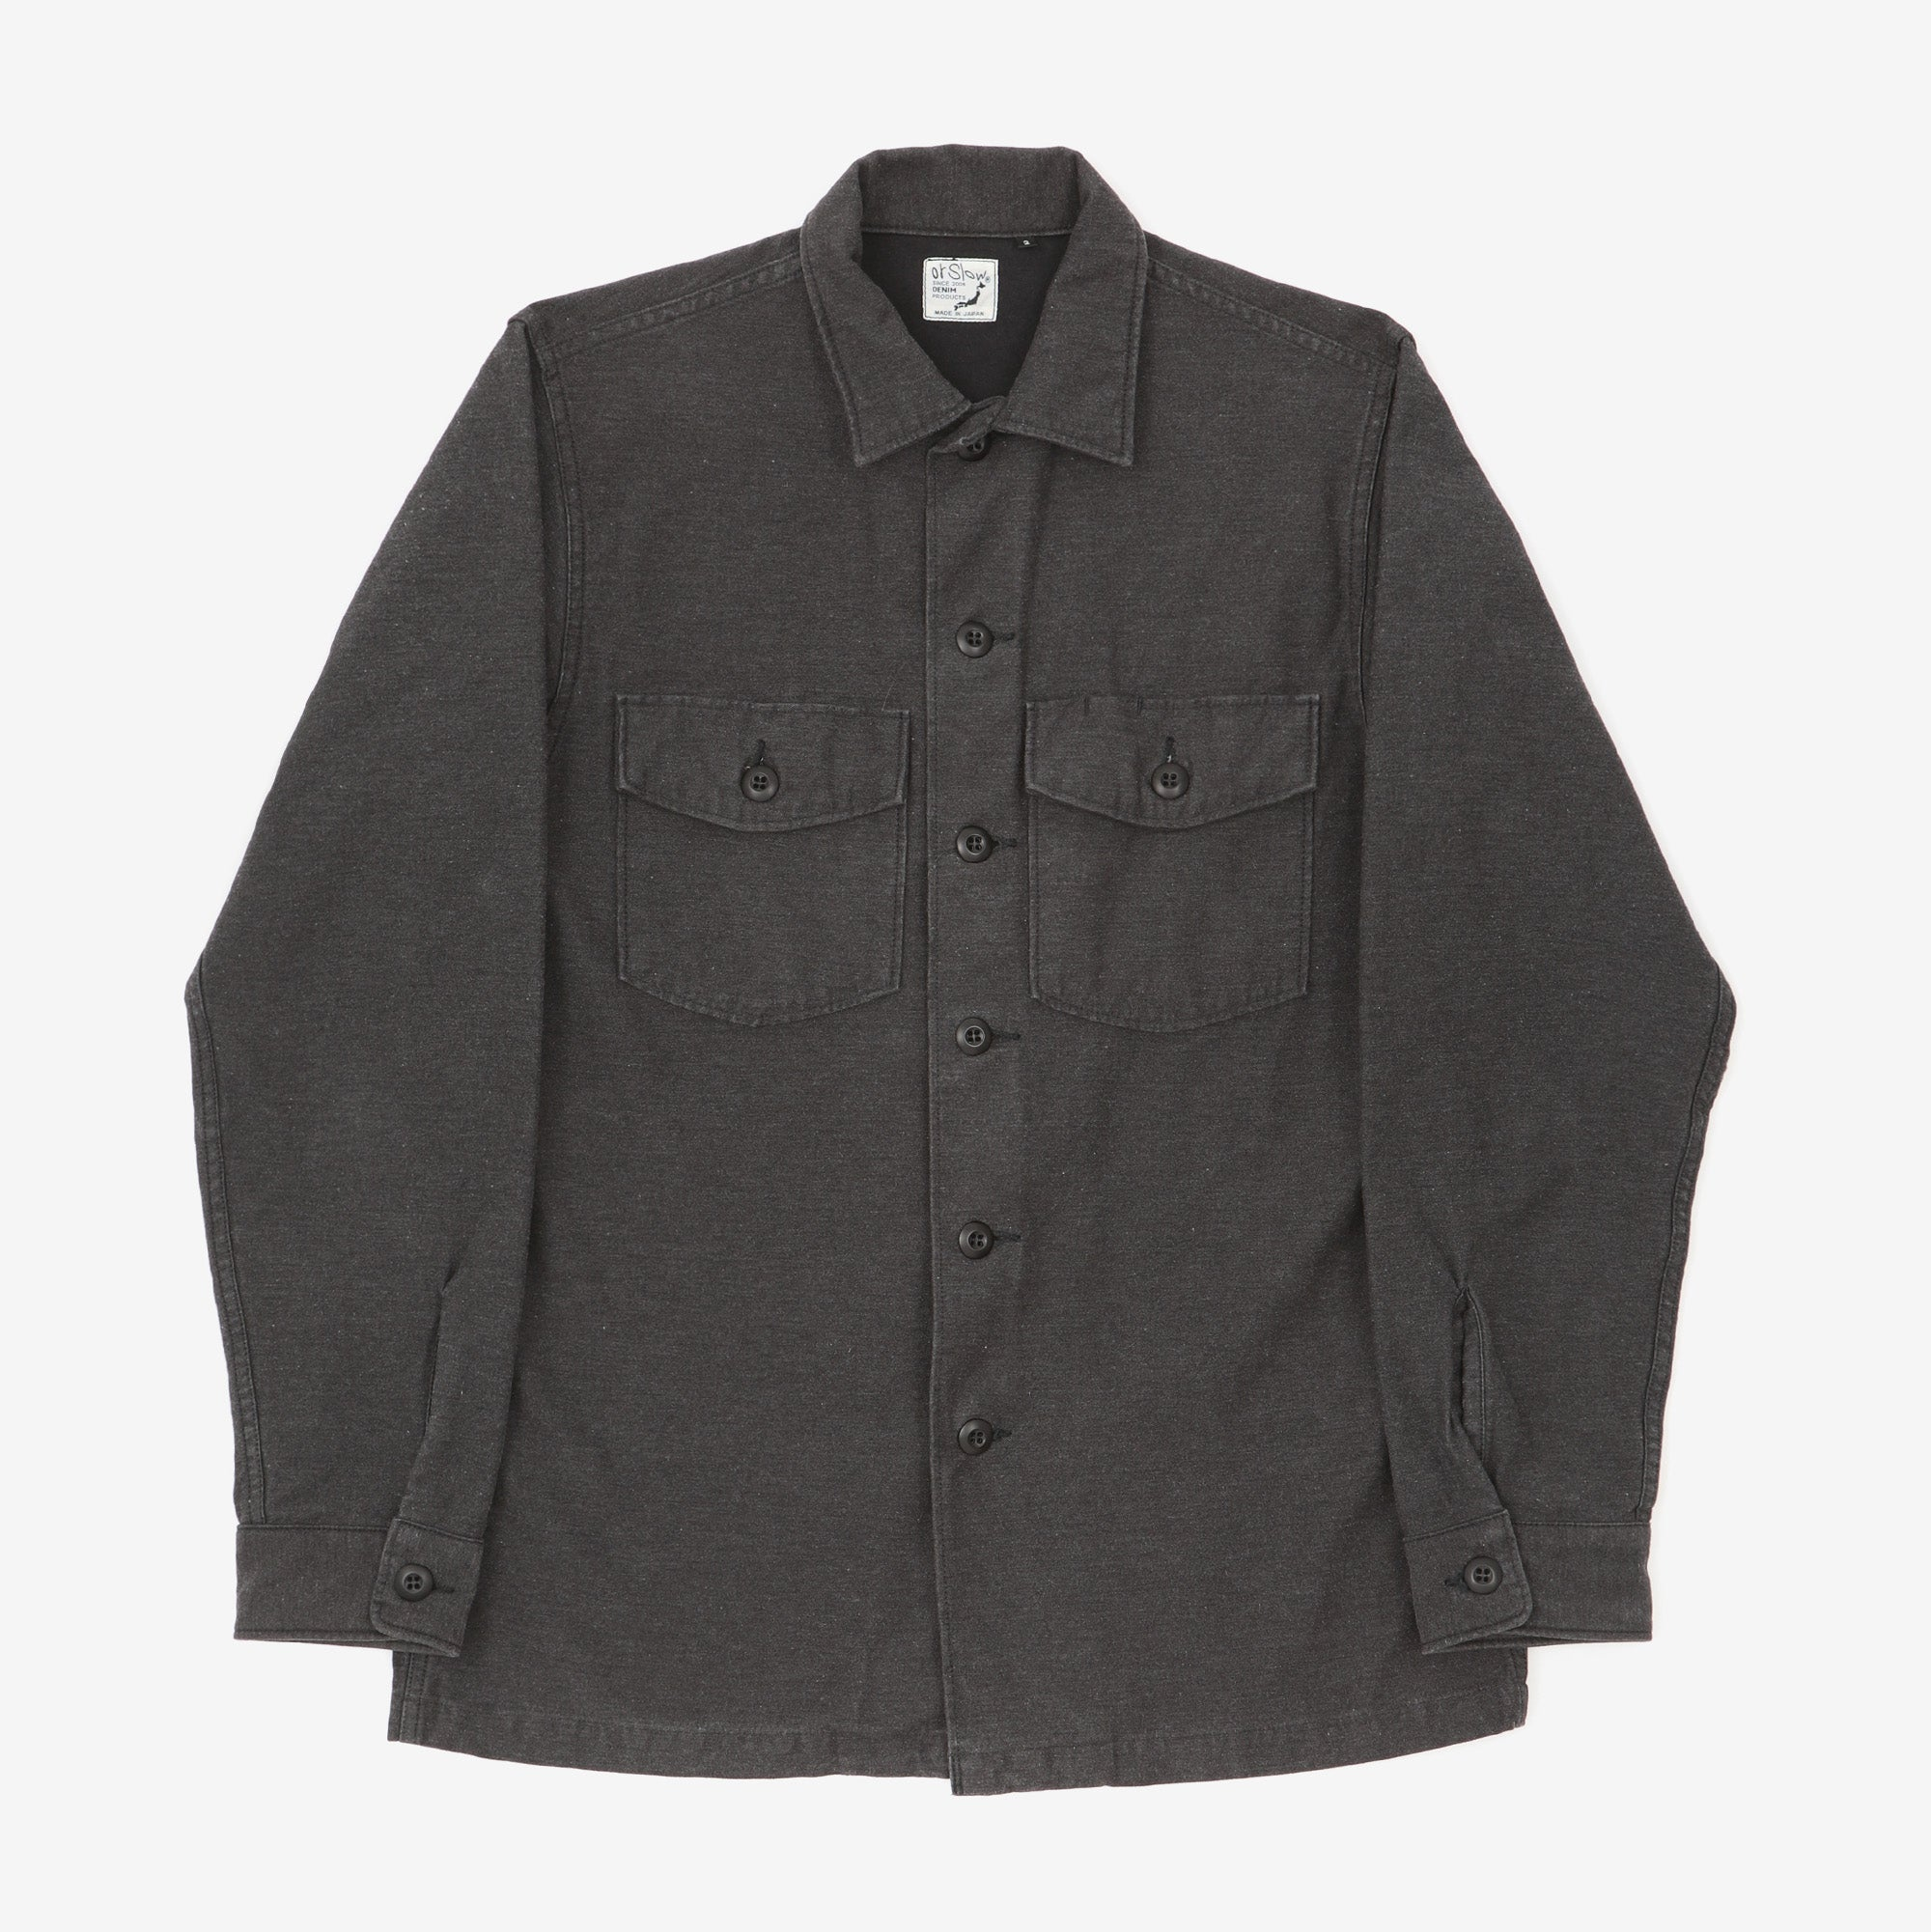 U.S Army Sateen Shirt